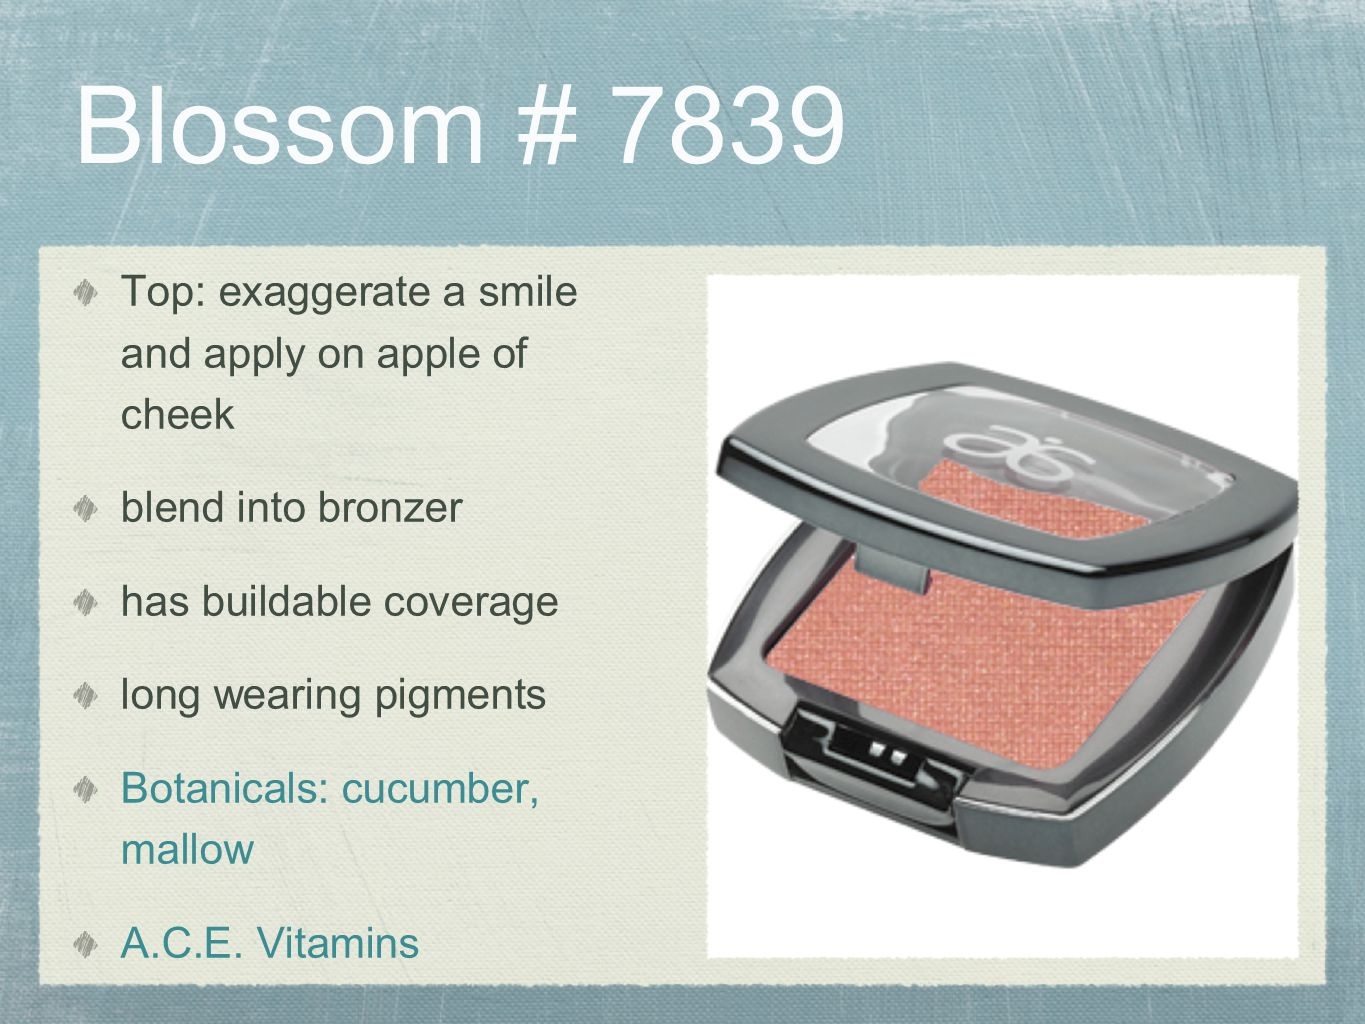 Blossom # 7839 Top: exaggerate a smile and apply on apple of cheek